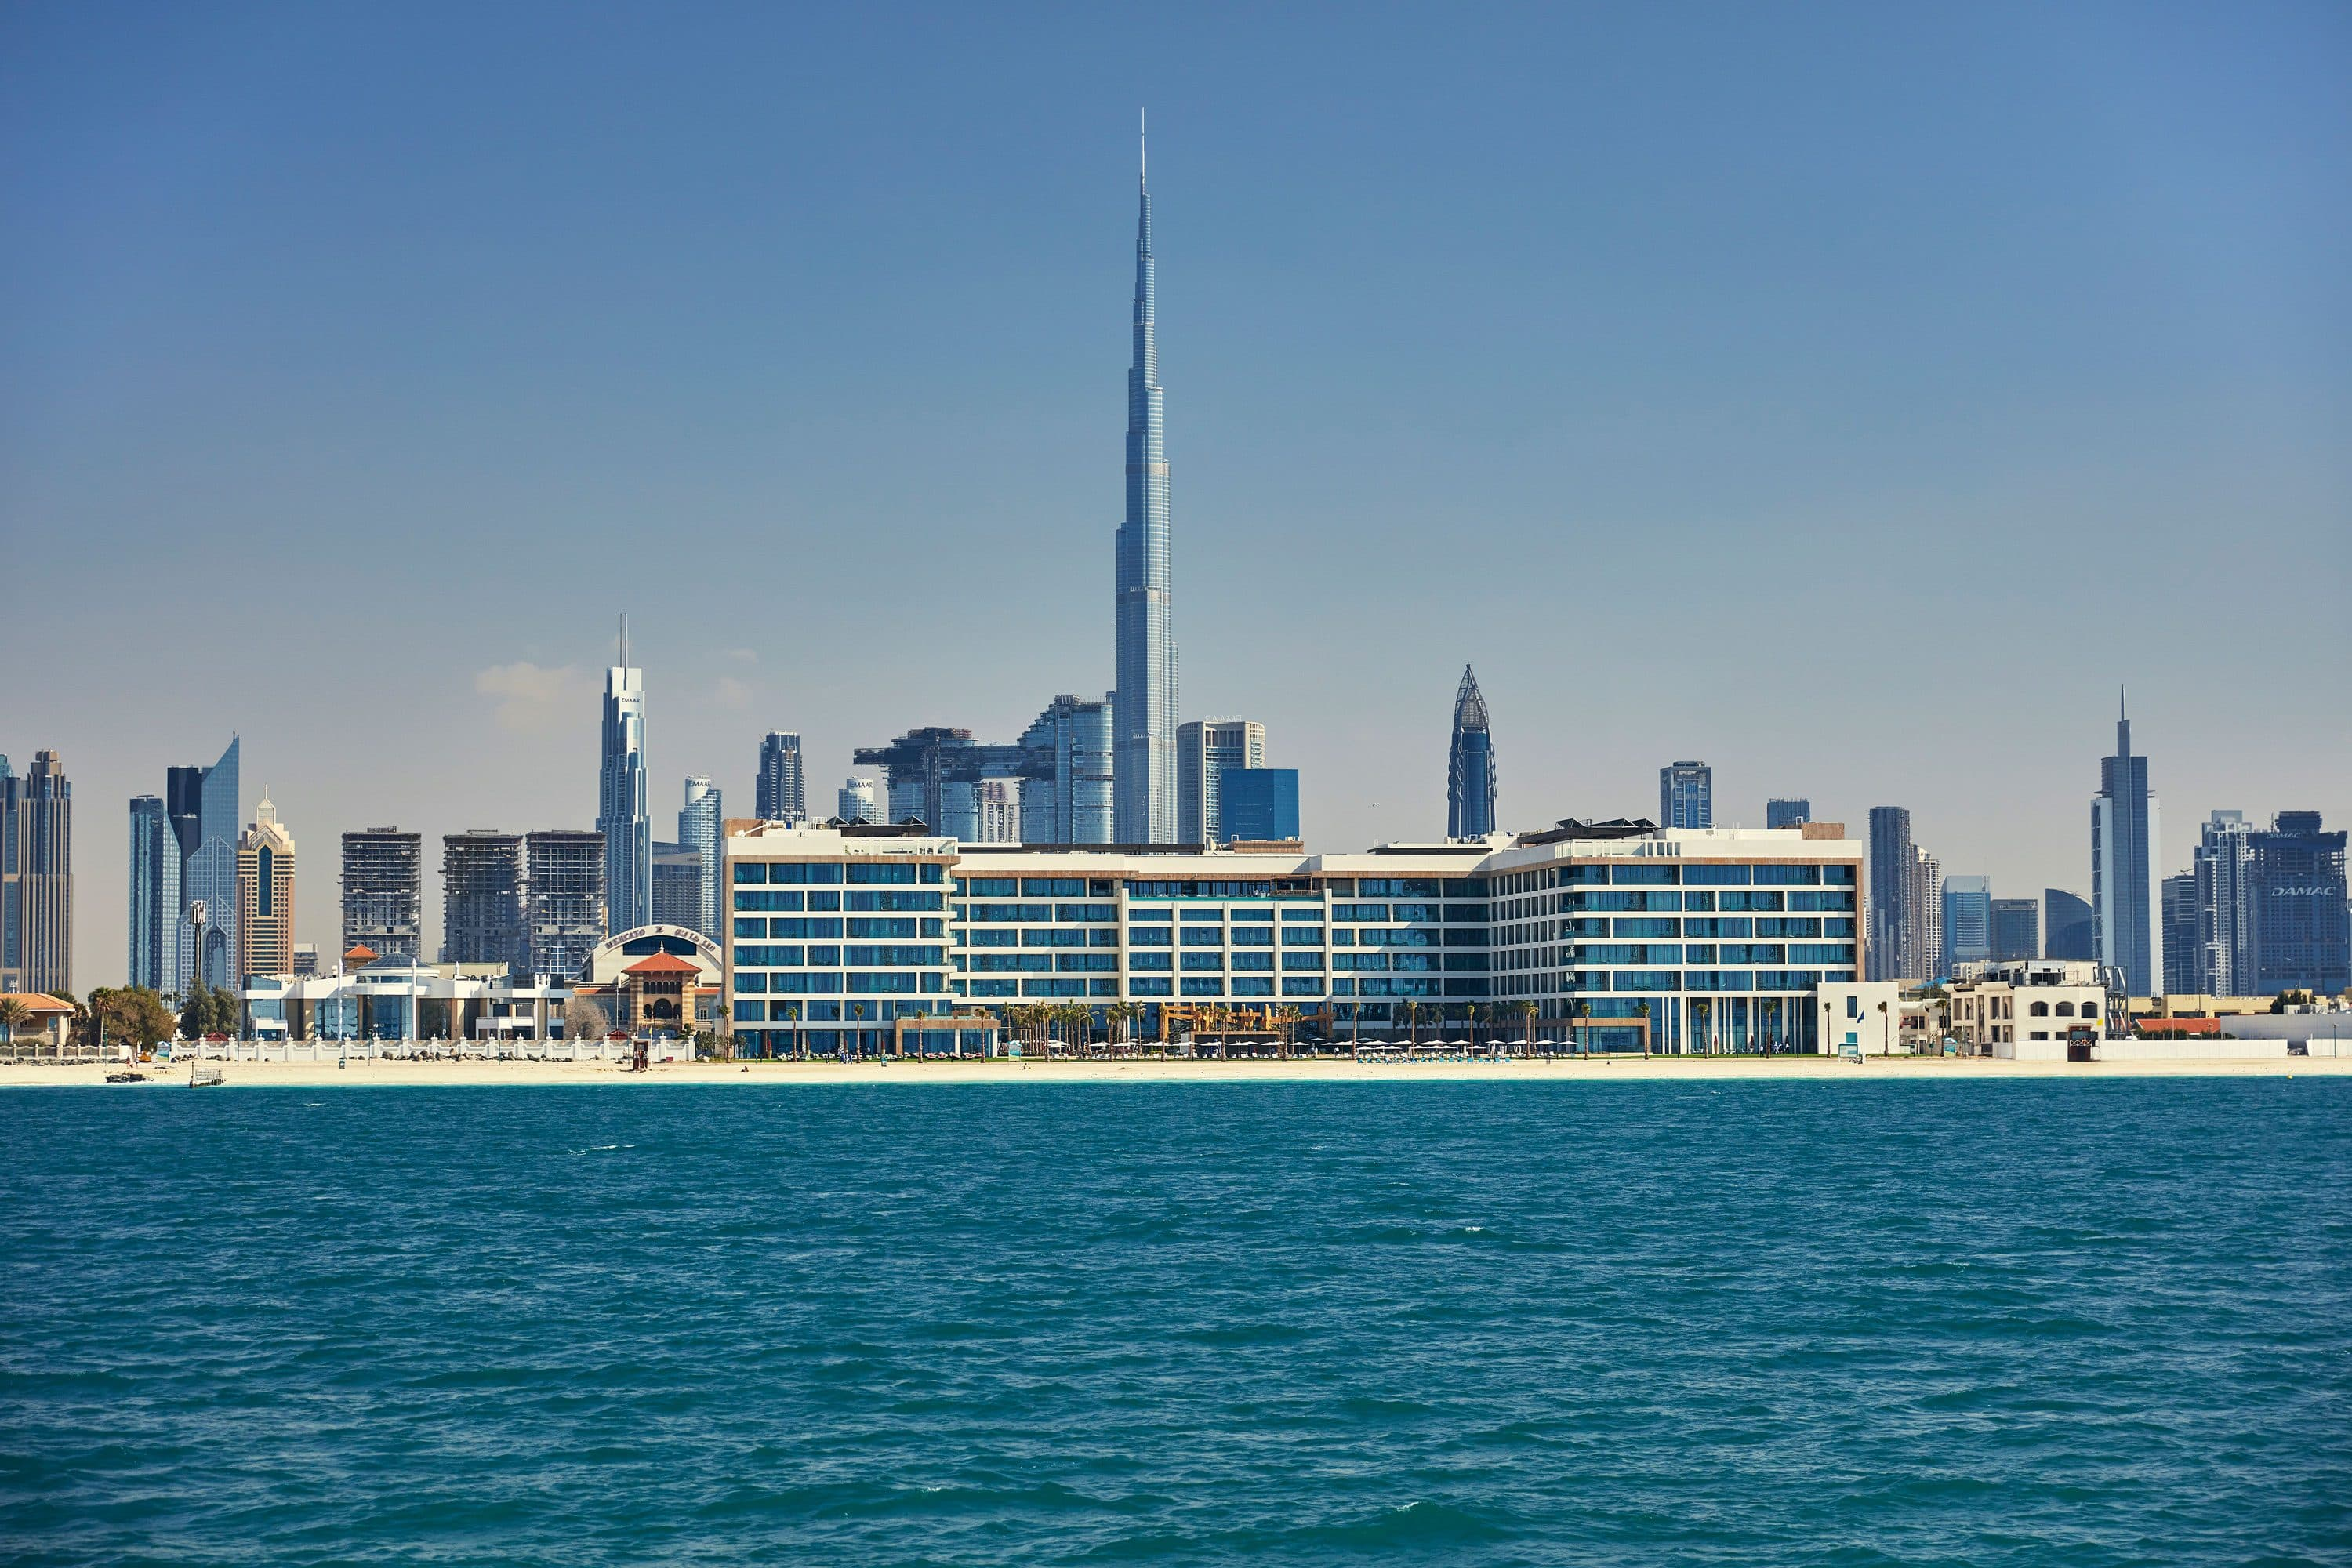 View of Mandarin Oriental Jumeira, Dubai and the city from the sea